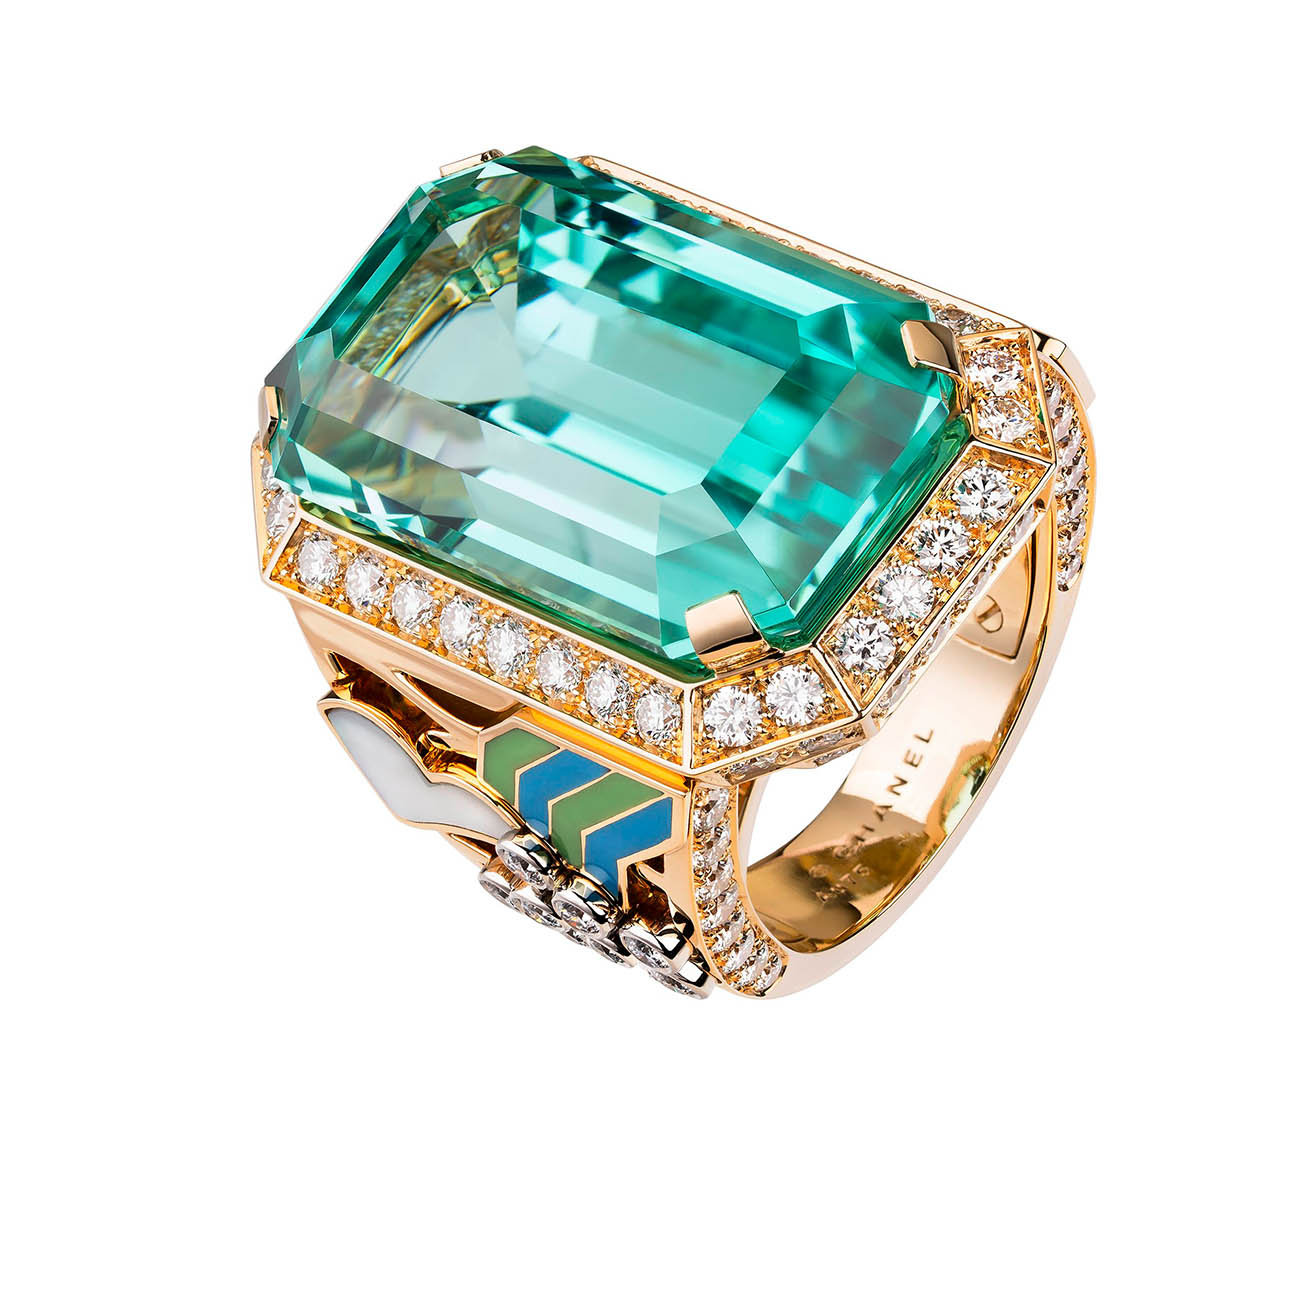 CHANEL COROMANDEL Bague Vibration Minerale